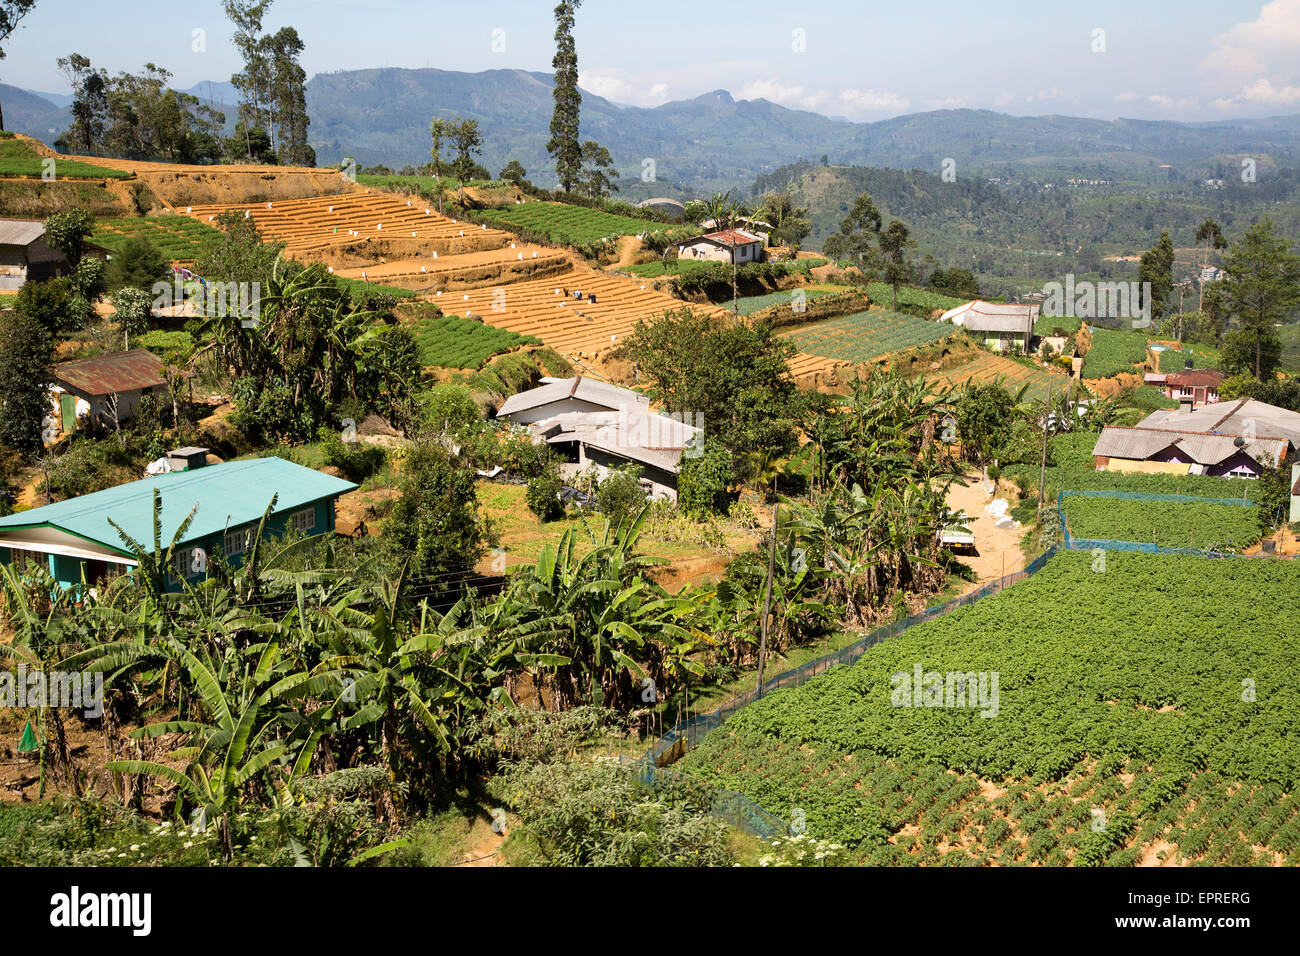 Landscape view of intensively cultivated valley sides, near Nuwara Eliya, Central Province, Sri Lanka, Asia - Stock Image